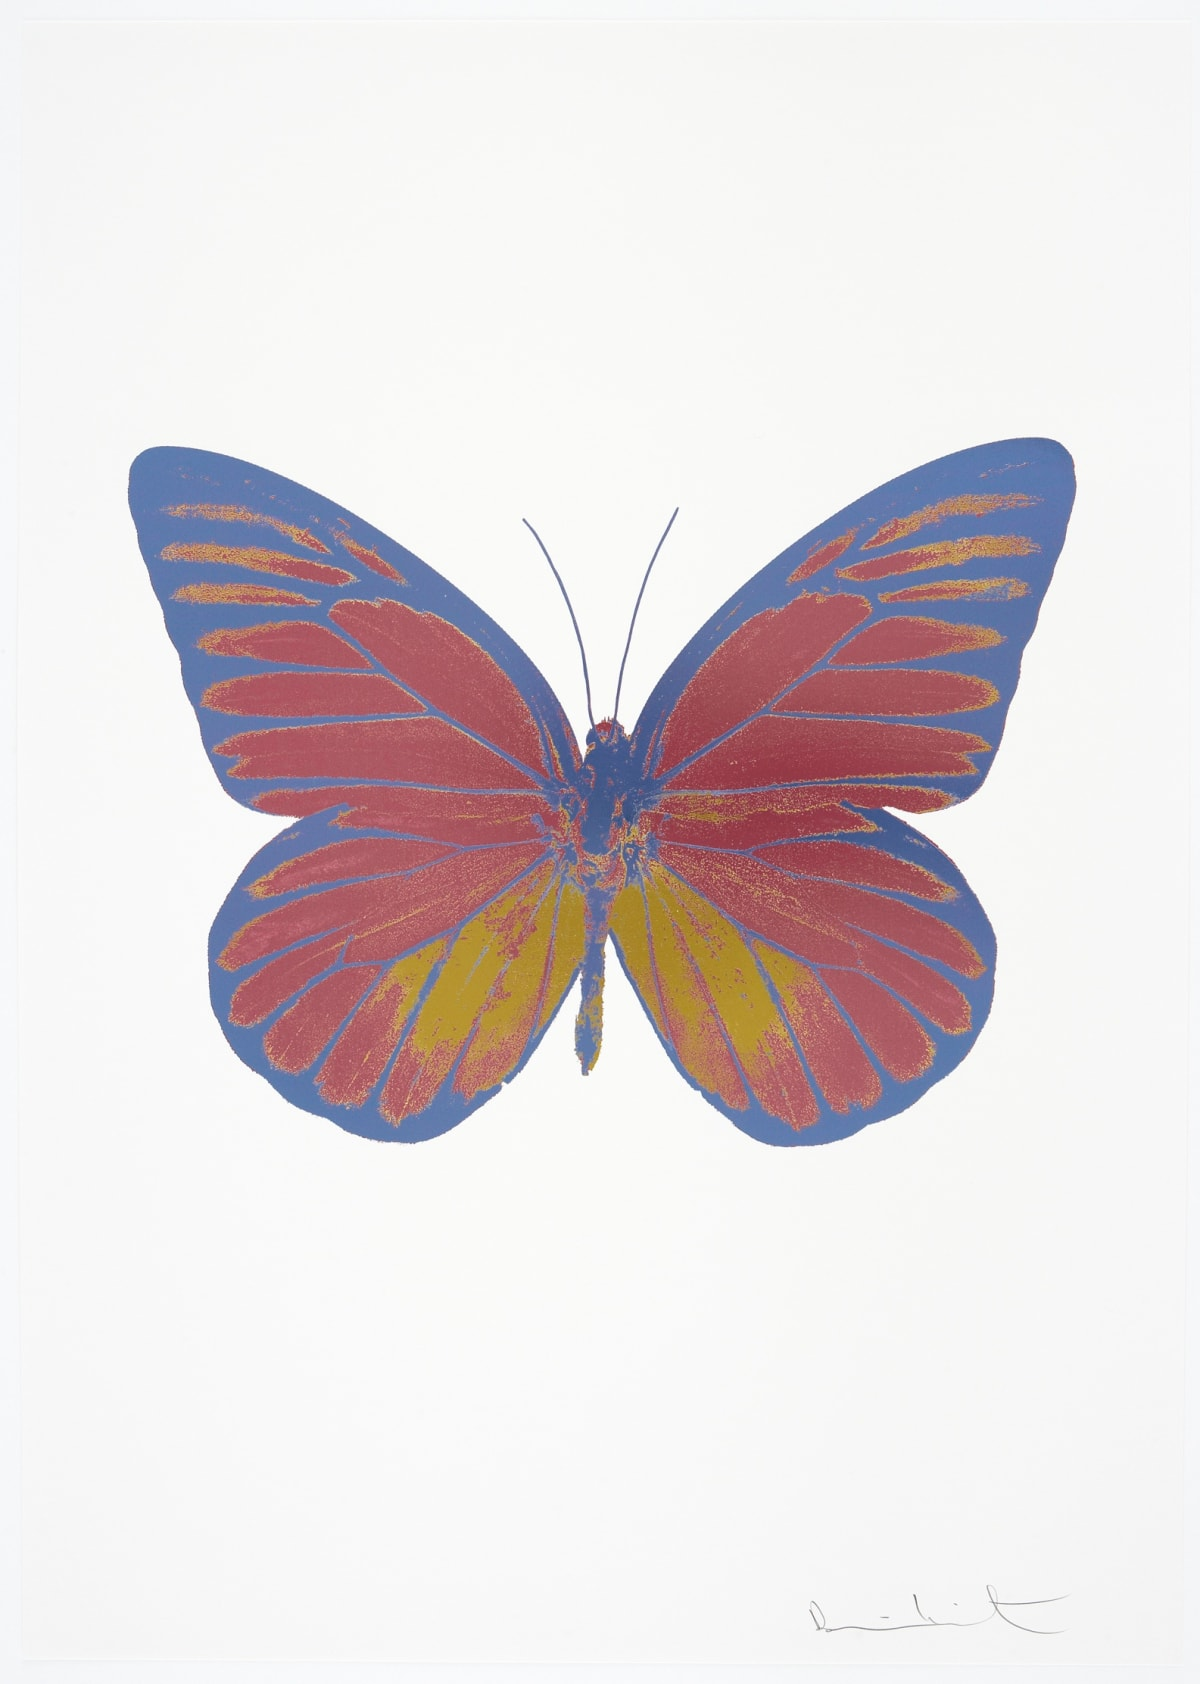 Damien Hirst The Souls I - Loganberry Pink/Oriental Gold/Cornflower Blue, 2010 3 colour foil block on 300gsm Arches 88 archival paper. Signed and numbered. Published by Paul Stolper and Other Criteria 72 x 51cm OC7762 / 659-25 Edition of 15